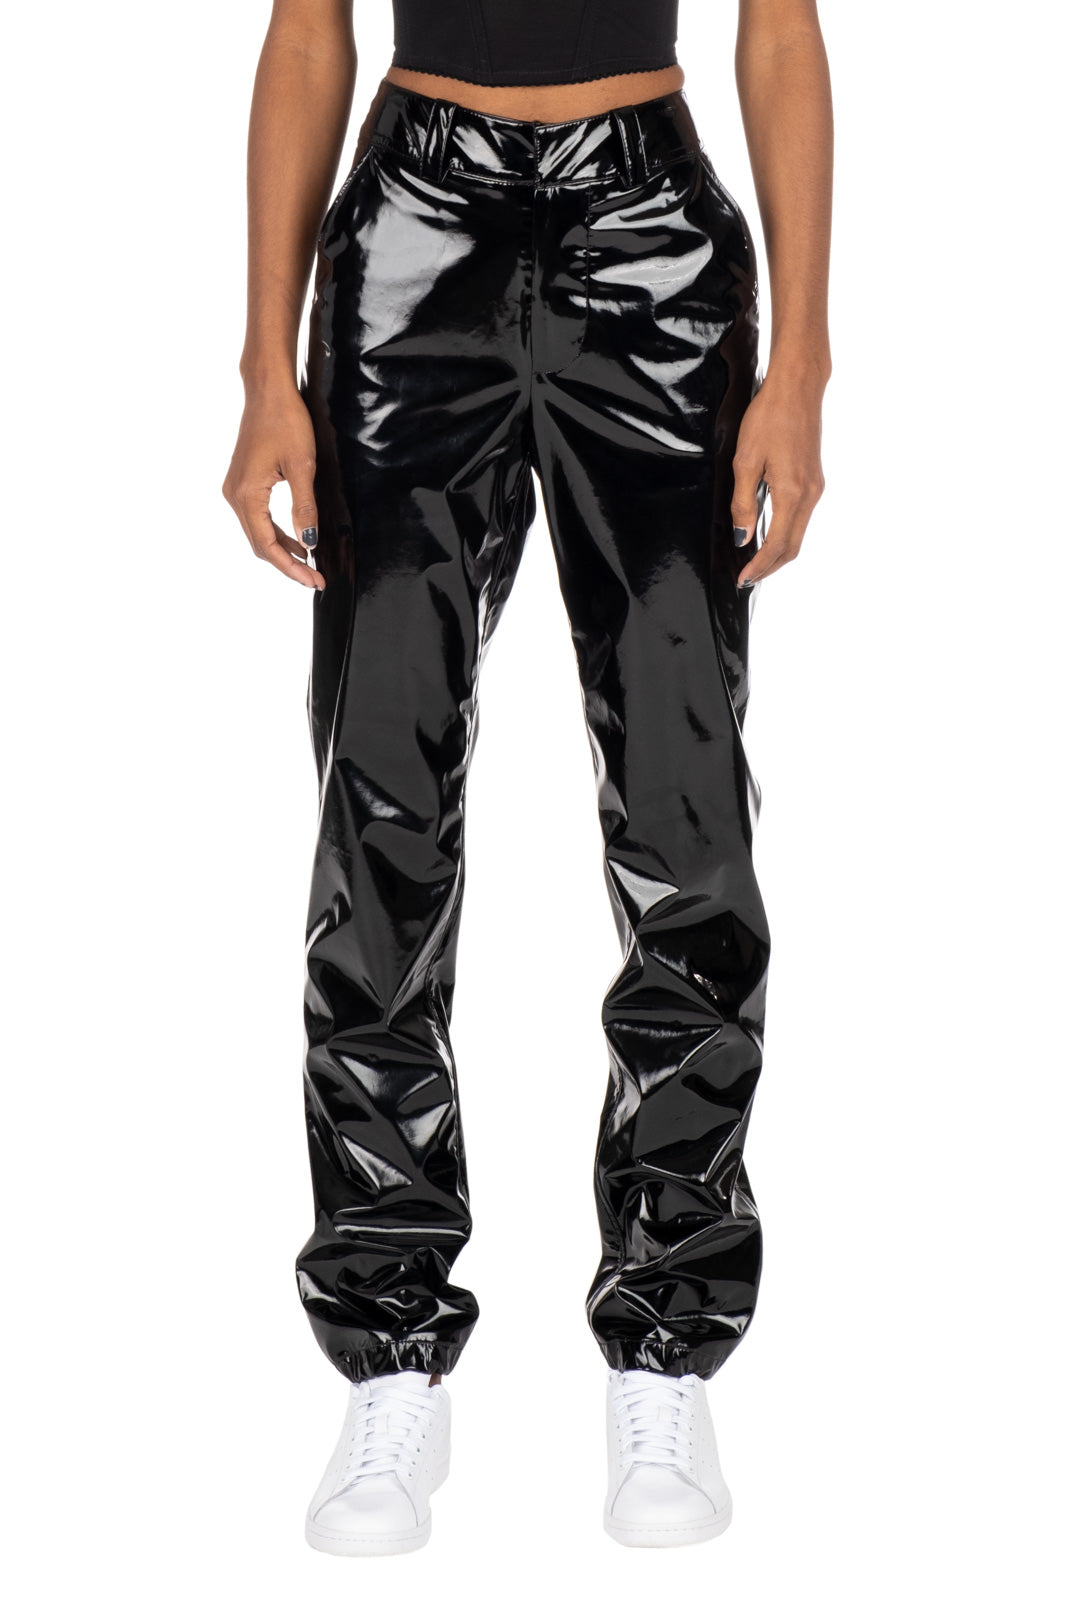 PATENT TROUSERS - Black